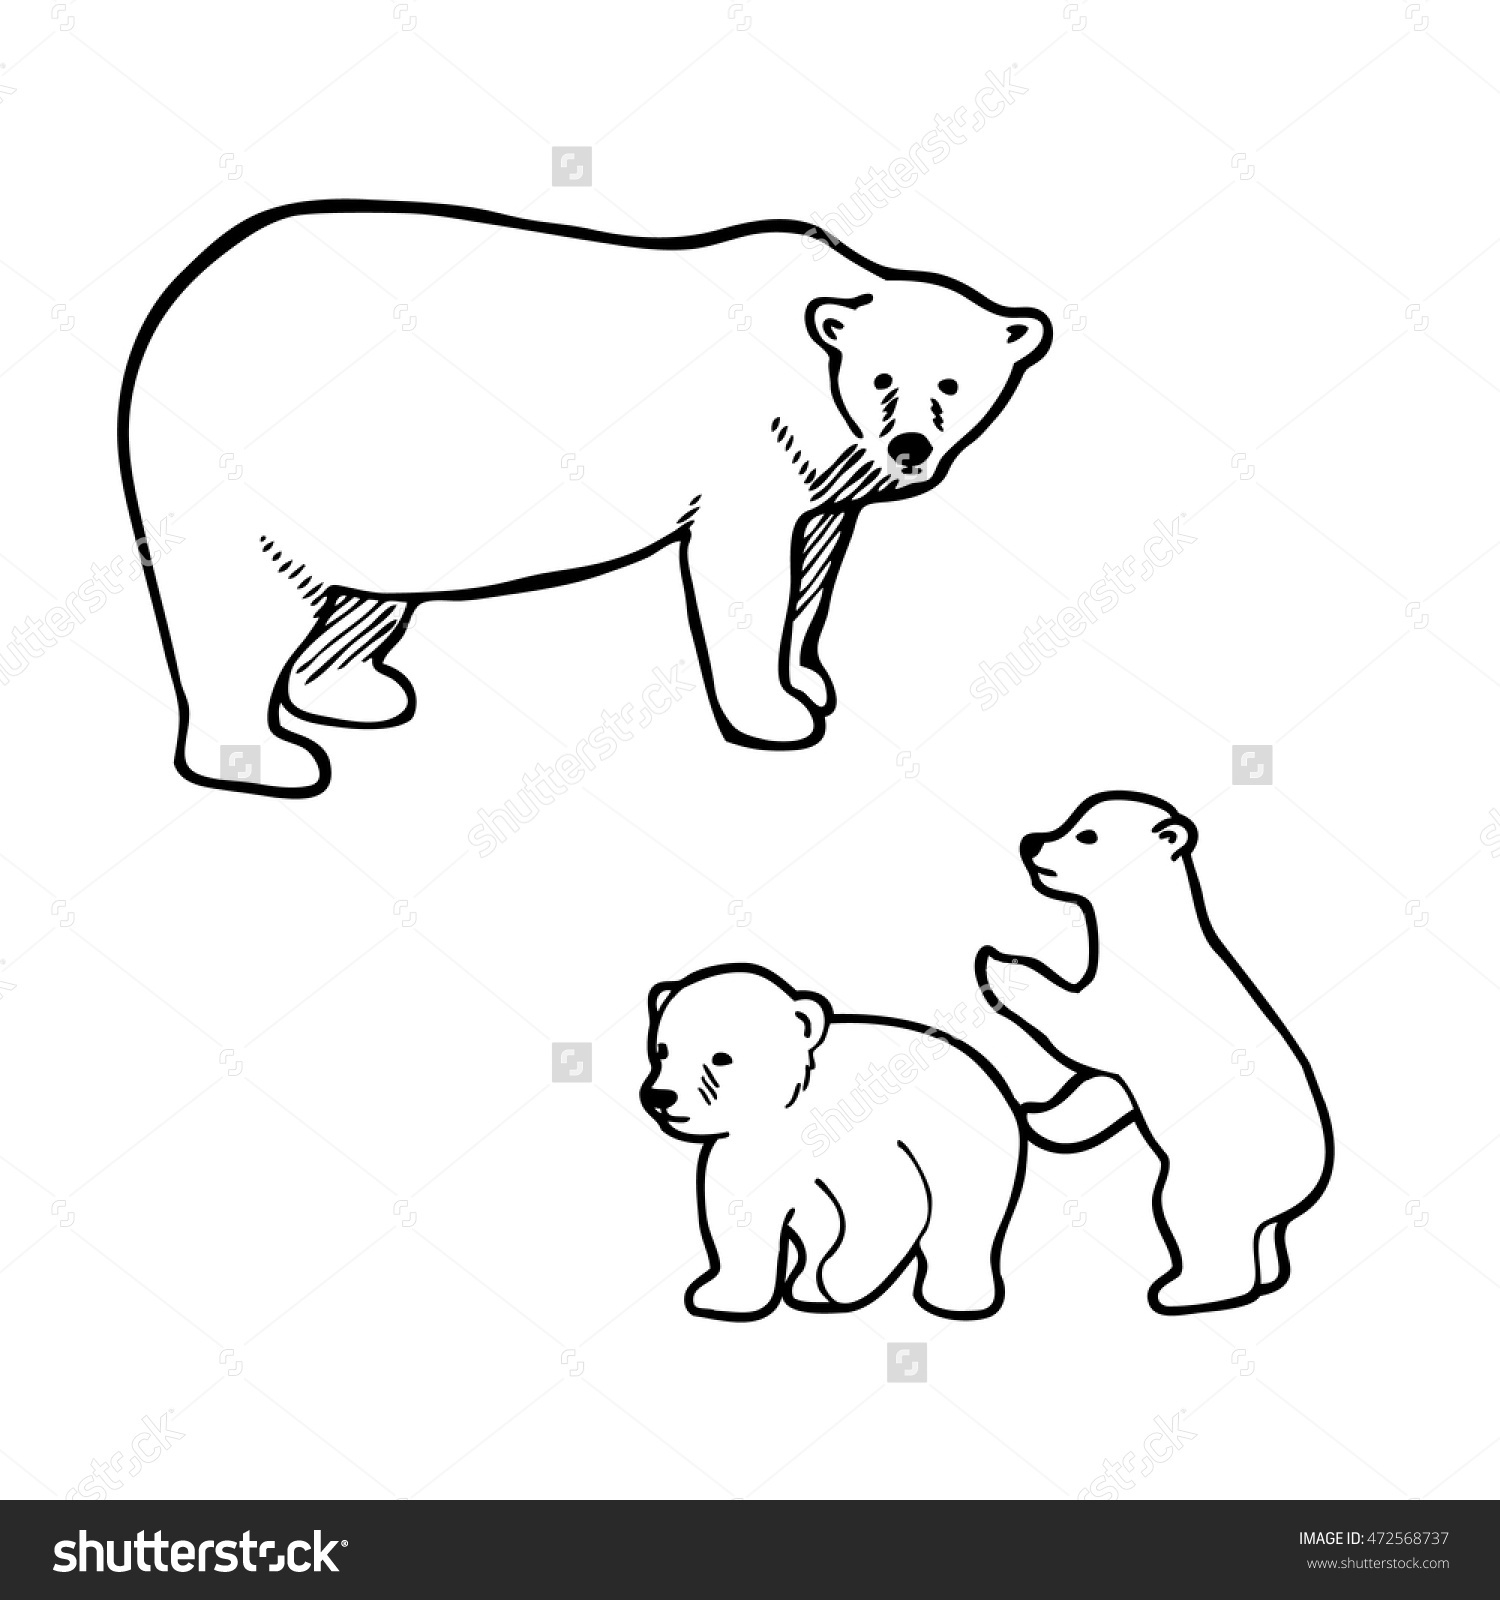 how to draw a bear easy